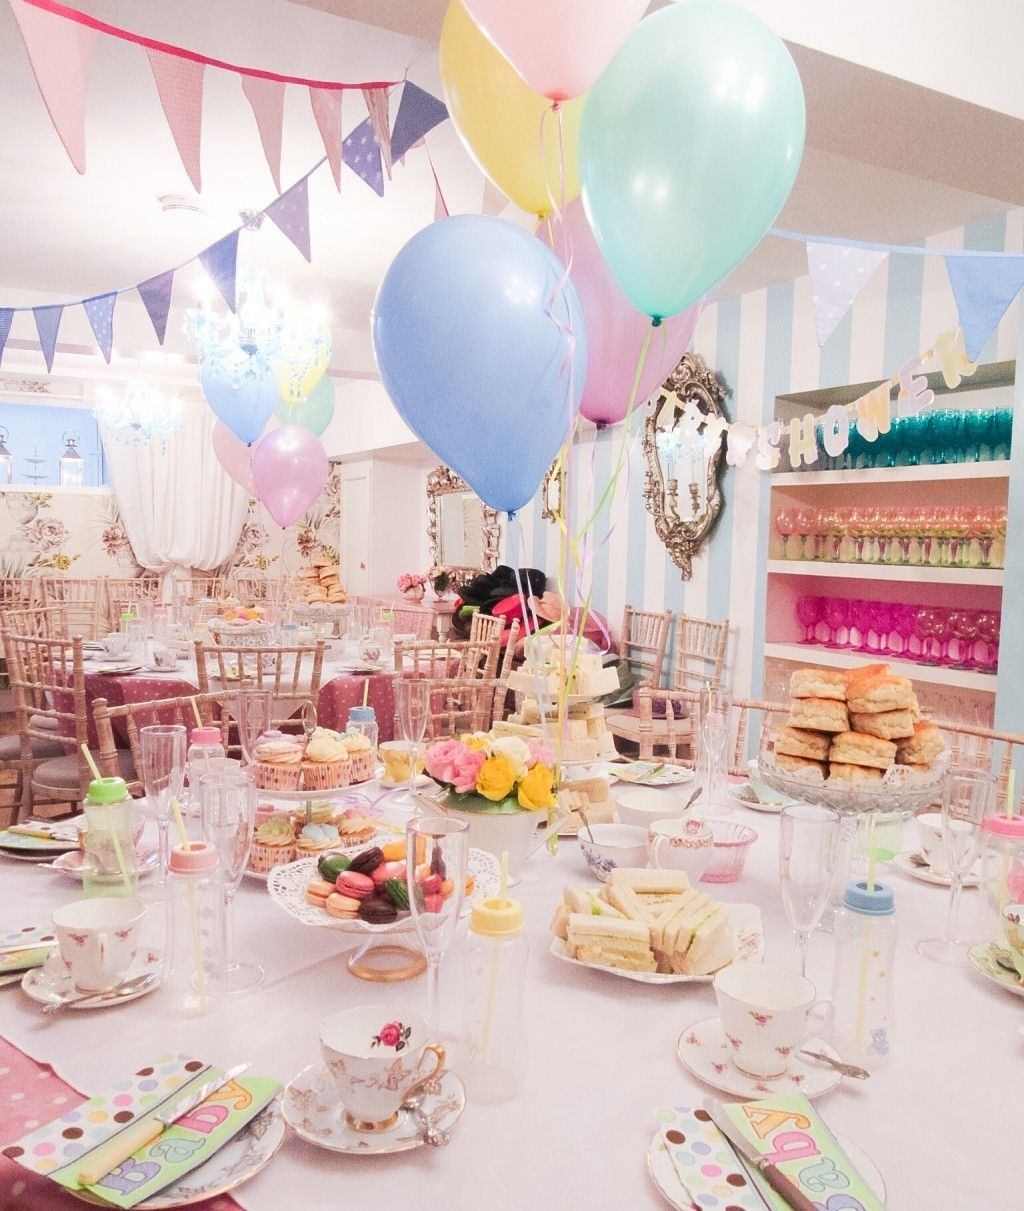 Cool Baby Shower Venues Httpatwebryfo Pinterest Baby